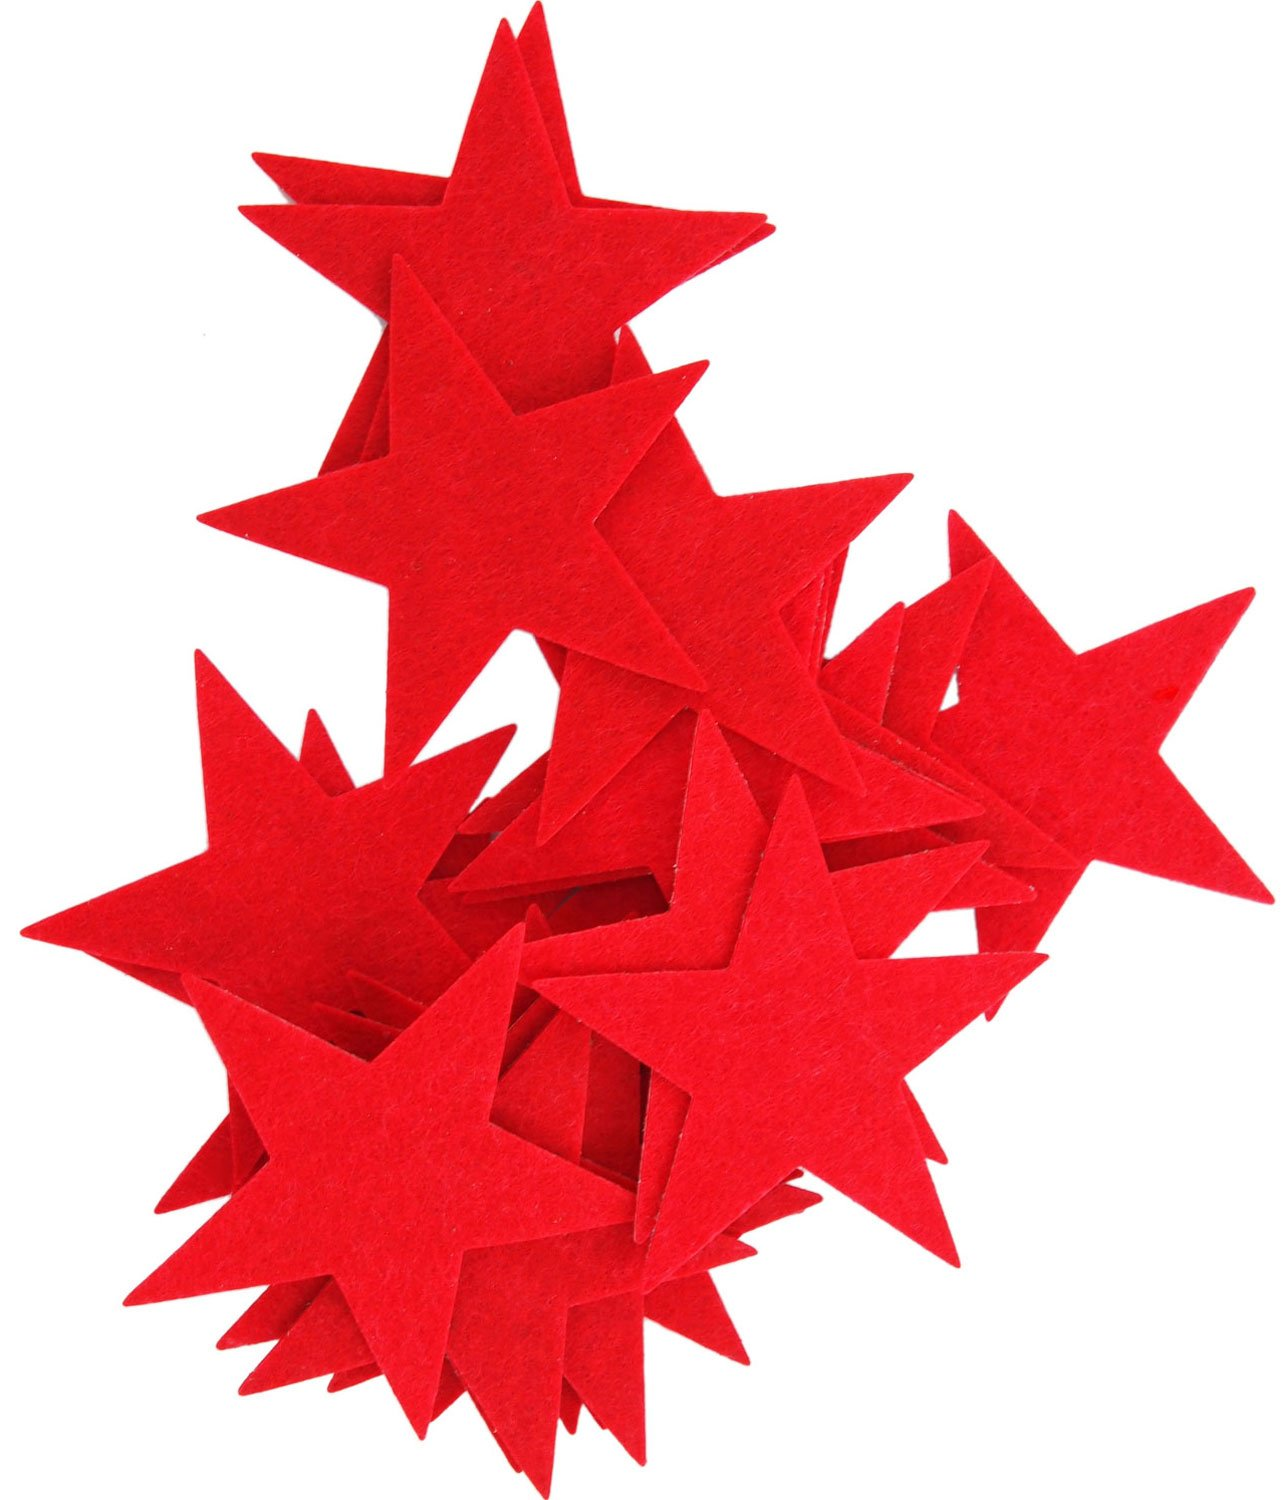 Playfully Ever After 3 Inch Red 22pc Felt Star Stickers PEA-FELT-3inStickyStar-22Red